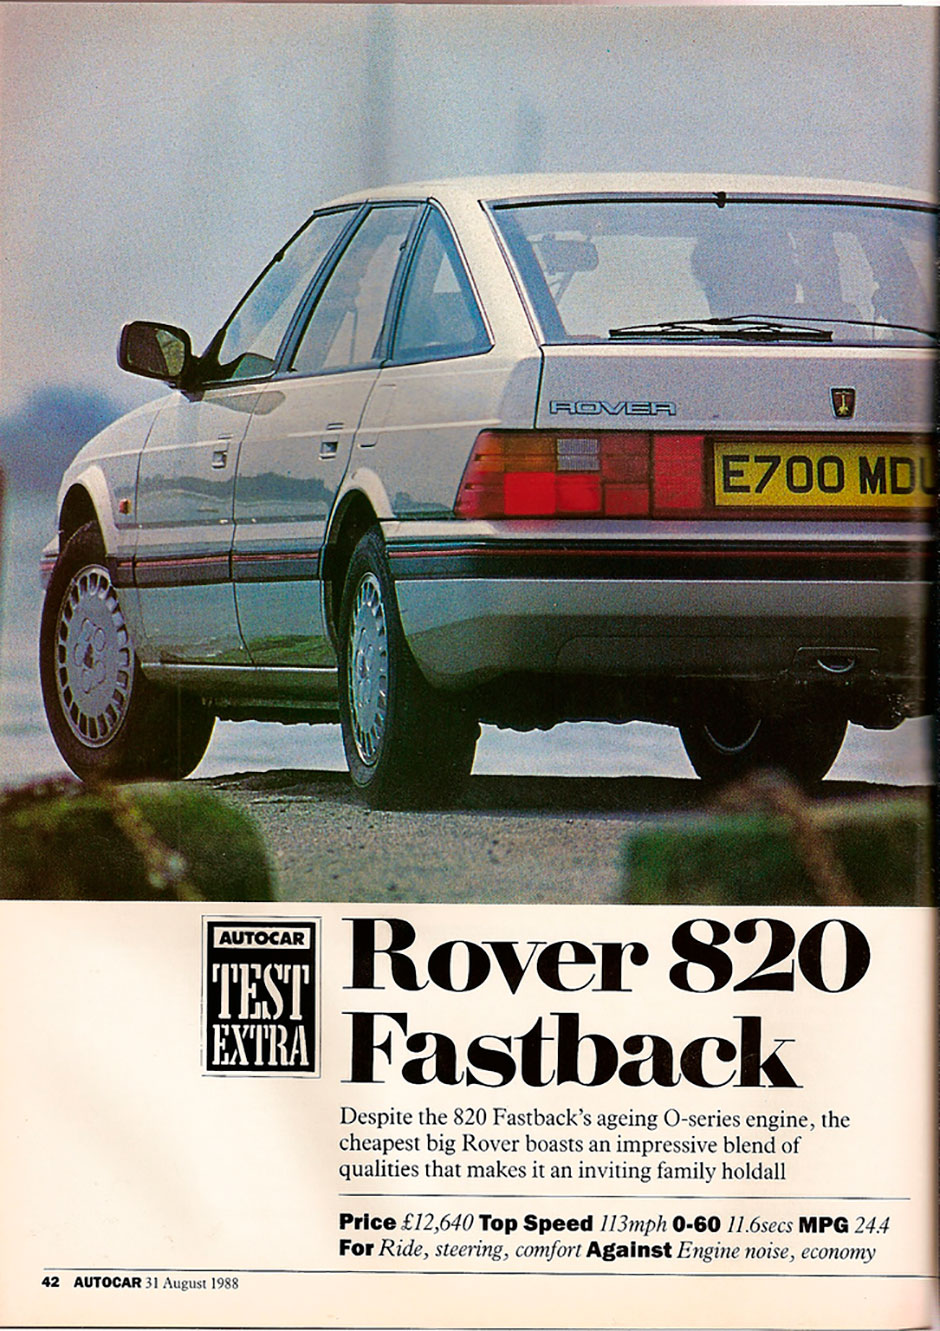 Rover 820 Fastback